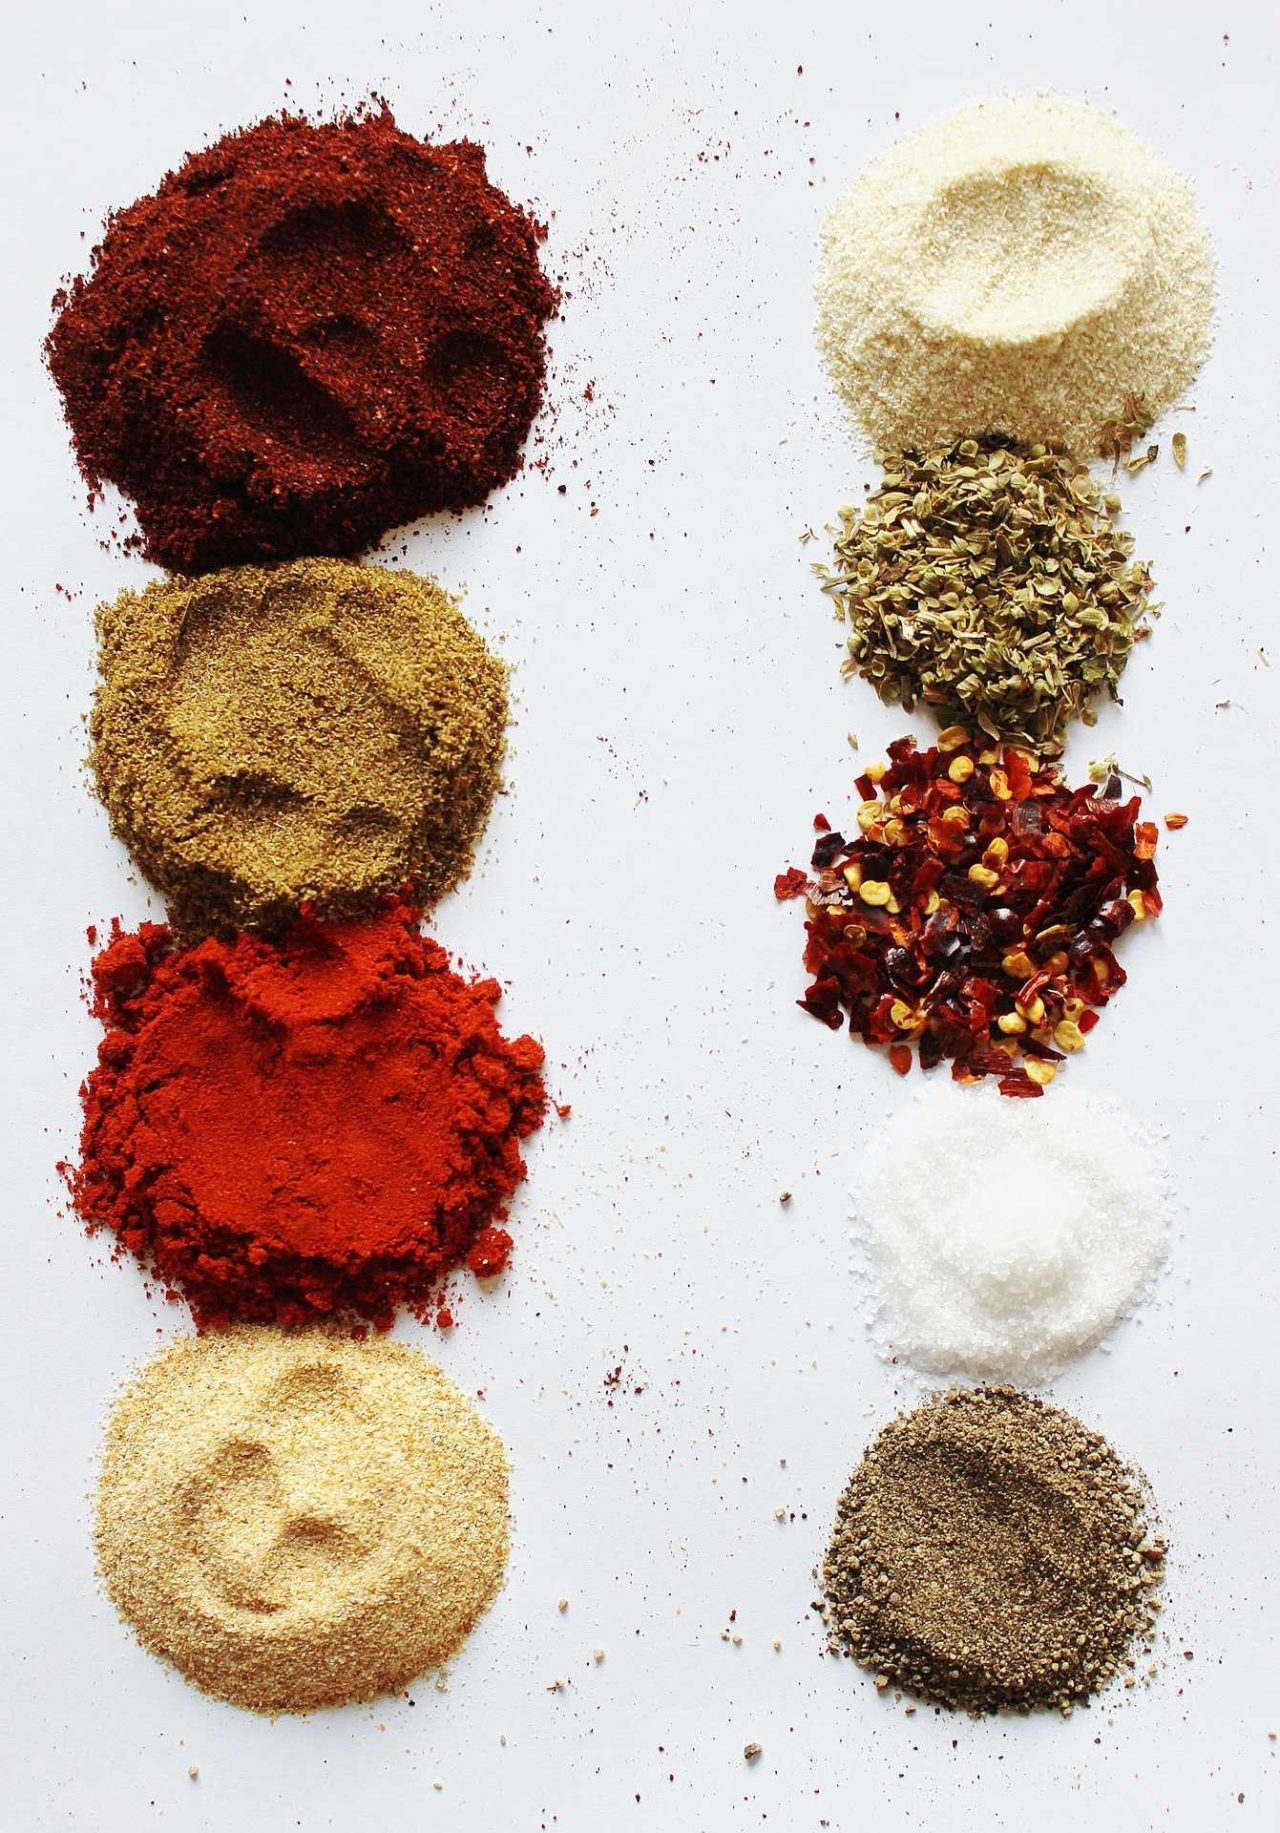 Homemade Taco Seasoning - Clean & Quick! No weird ingredients and ready in just minutes.